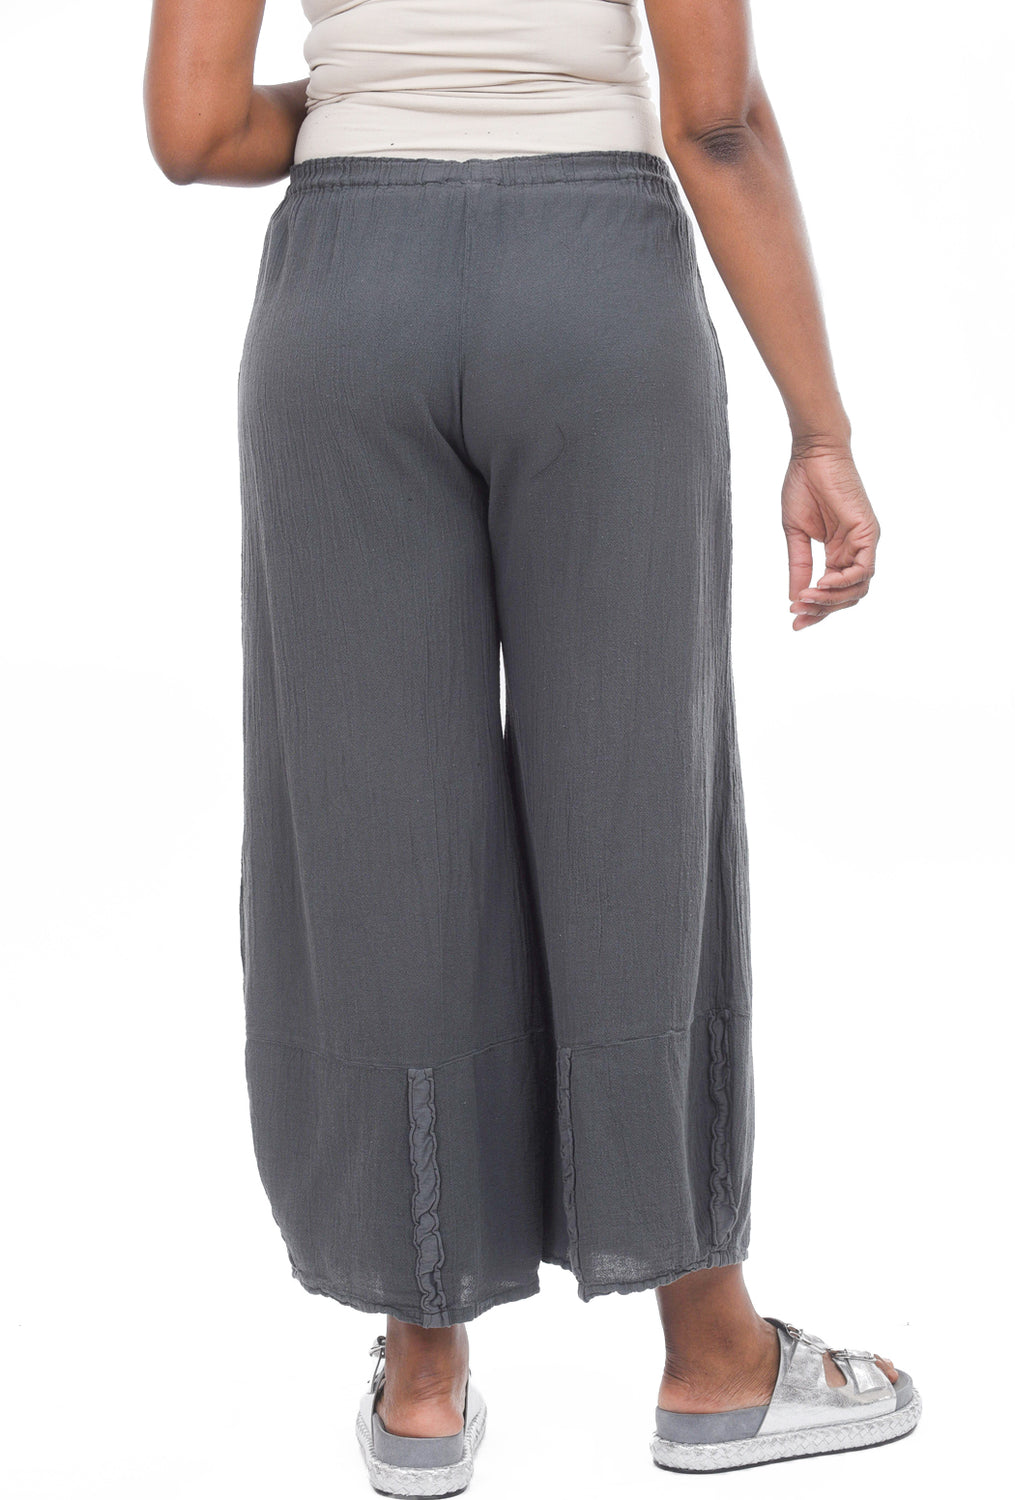 Oh My Gauze Honey Pants, Graphite Gray